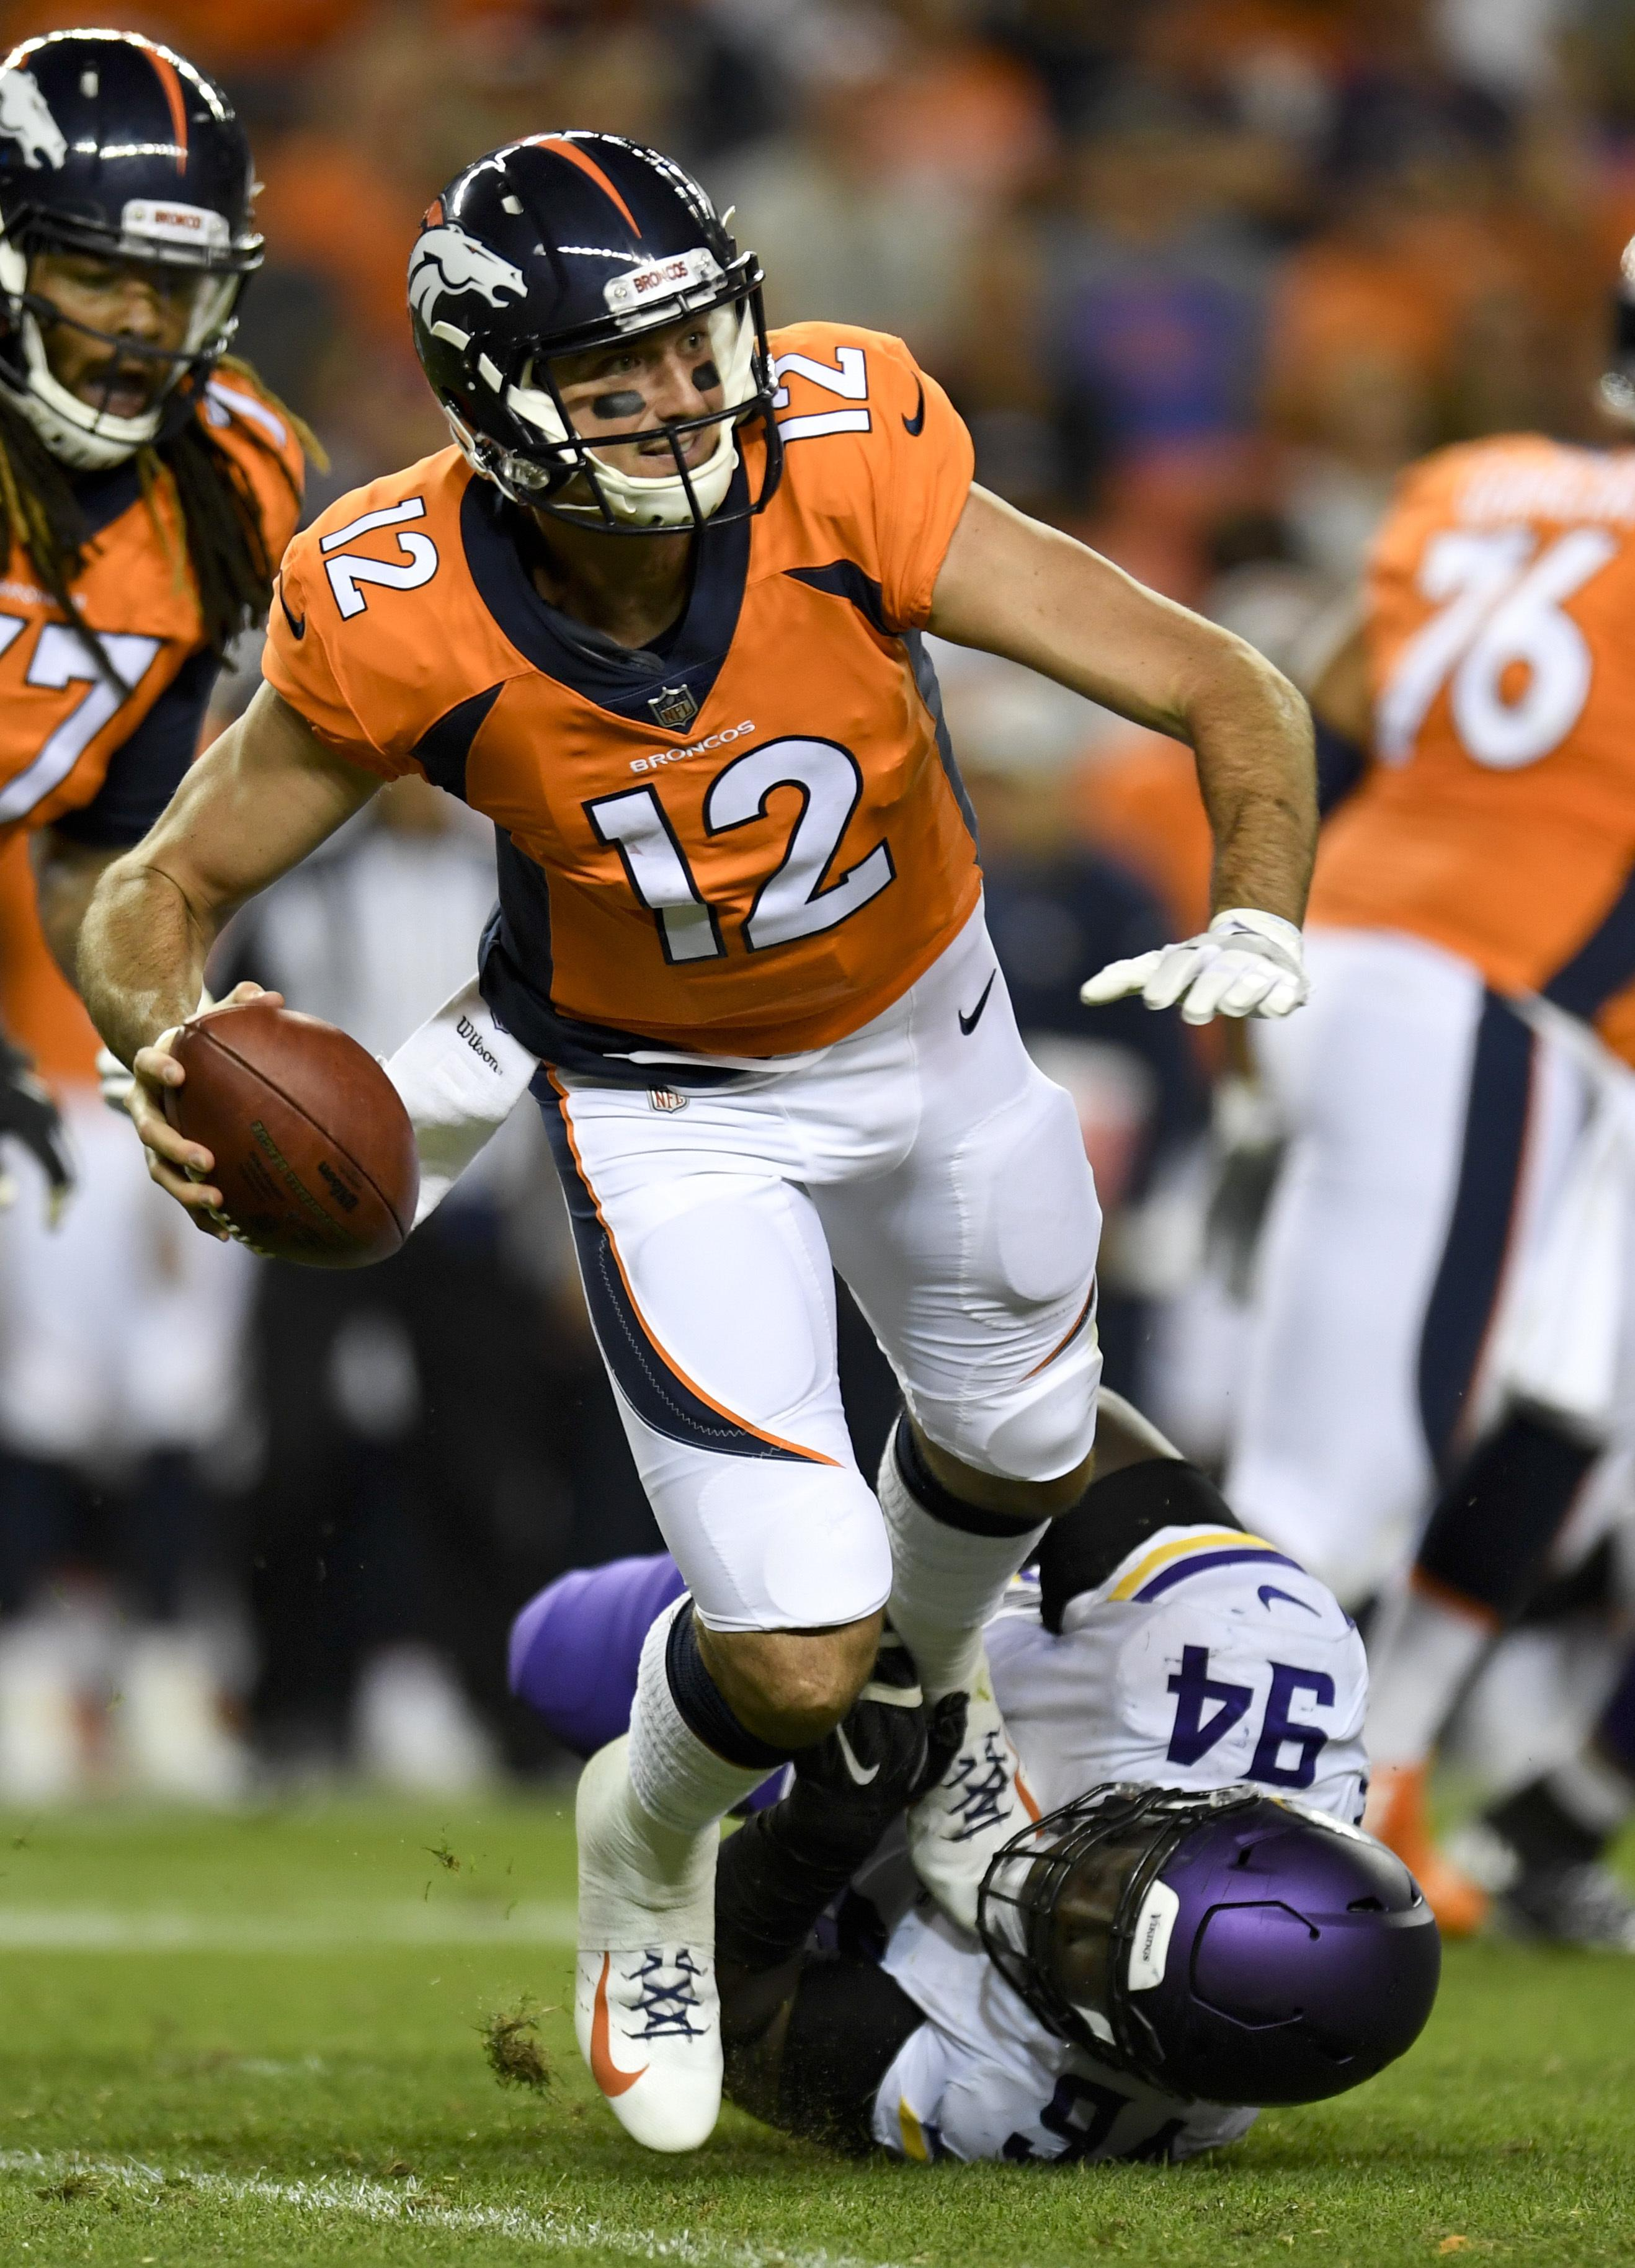 de24f645a Paxton Lynch demoted, Chad Kelly promoted in Denver - Washington Times